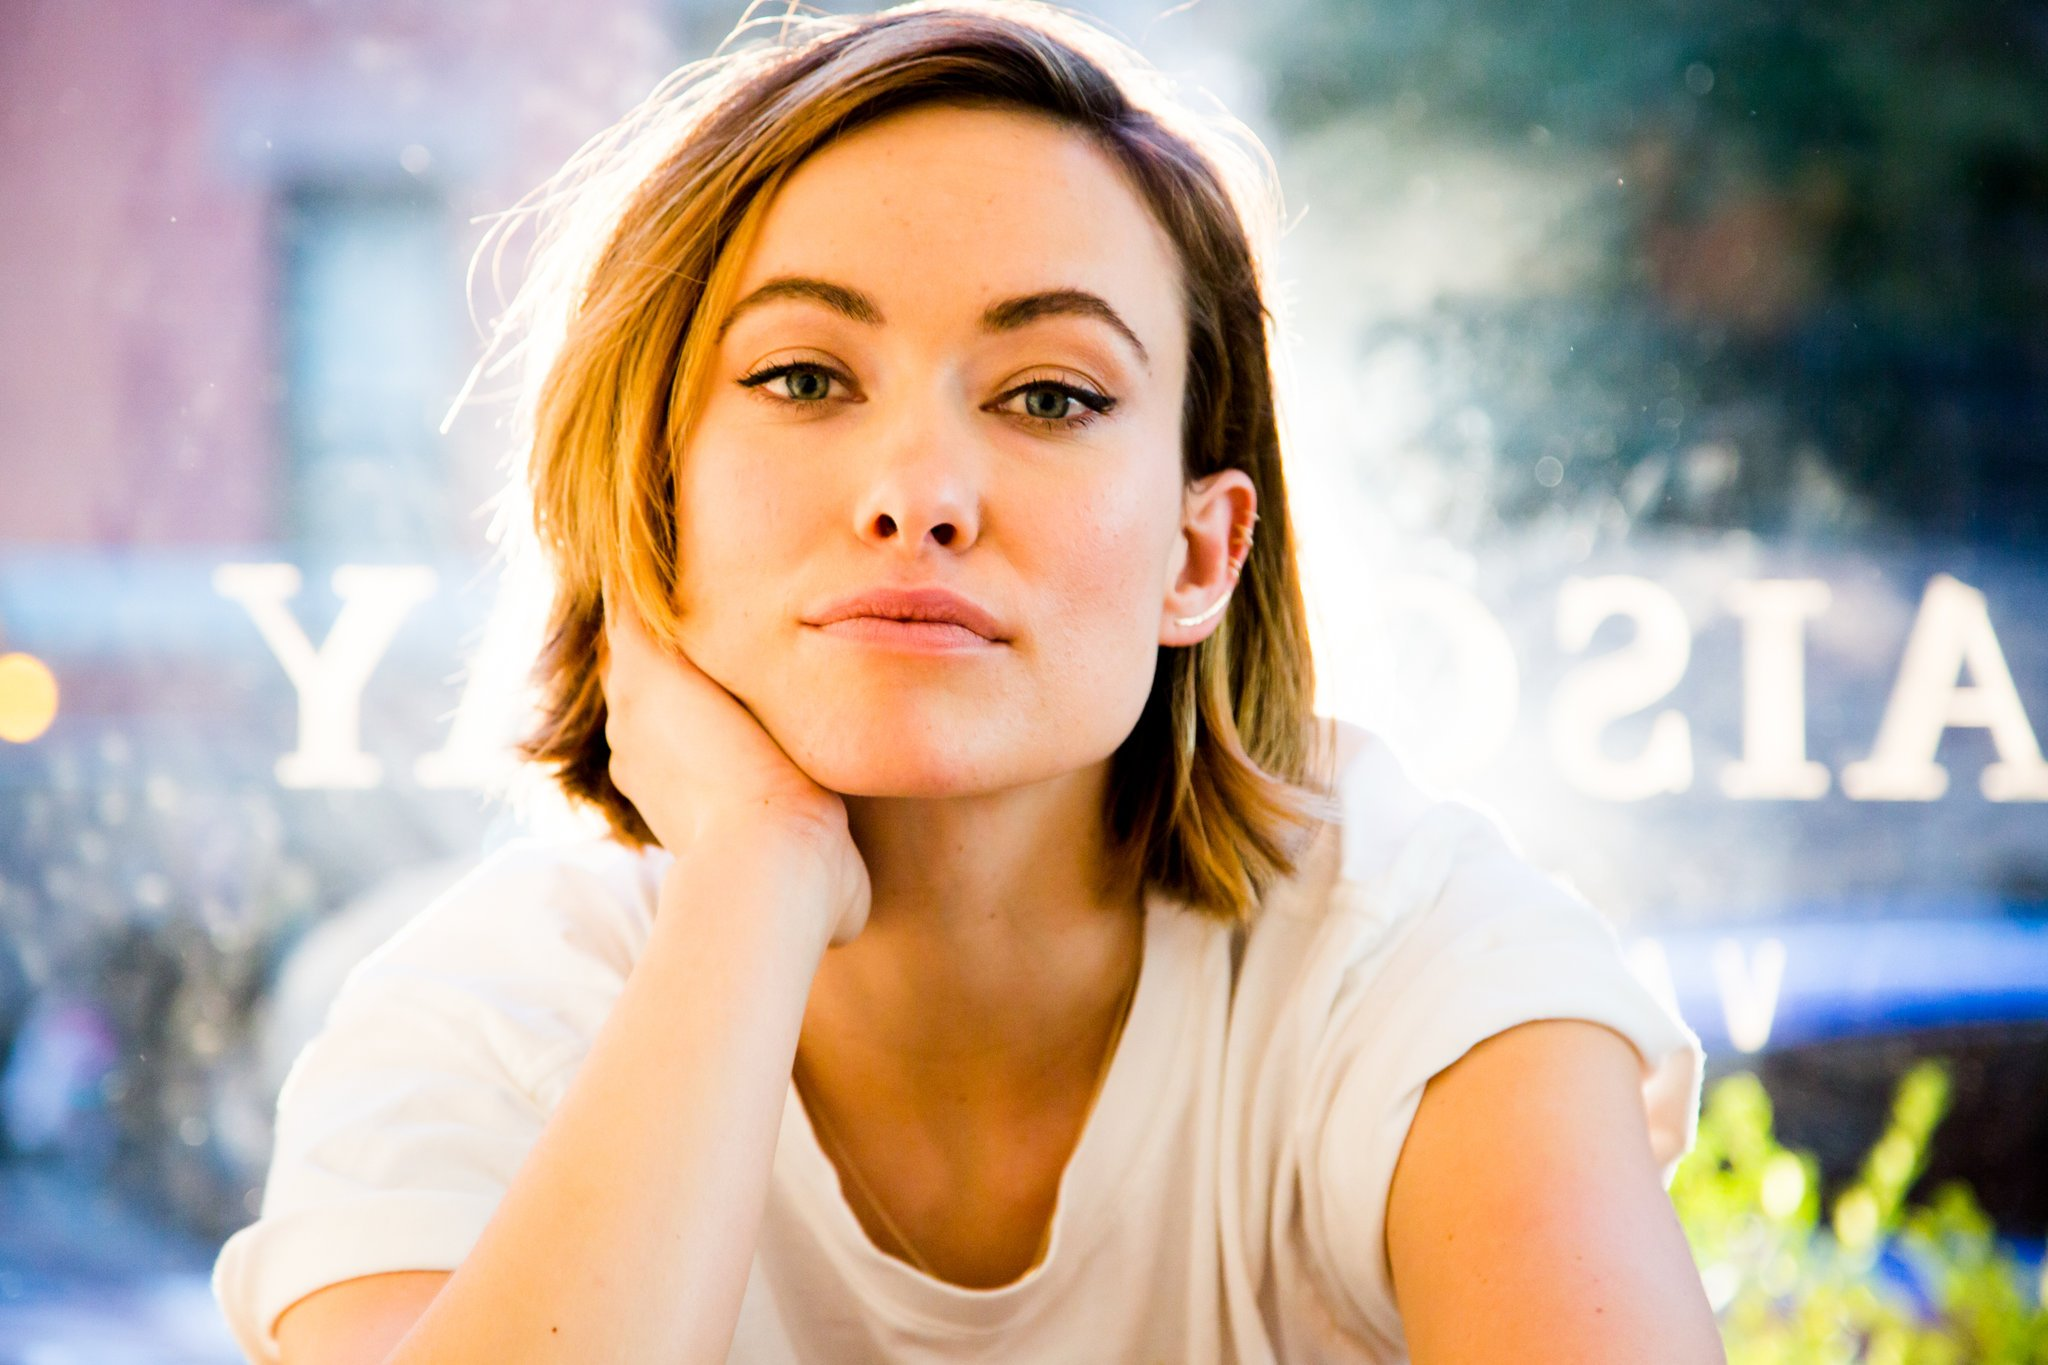 Olivia Wilde has short blonde hair and is wearing a white t-shirt